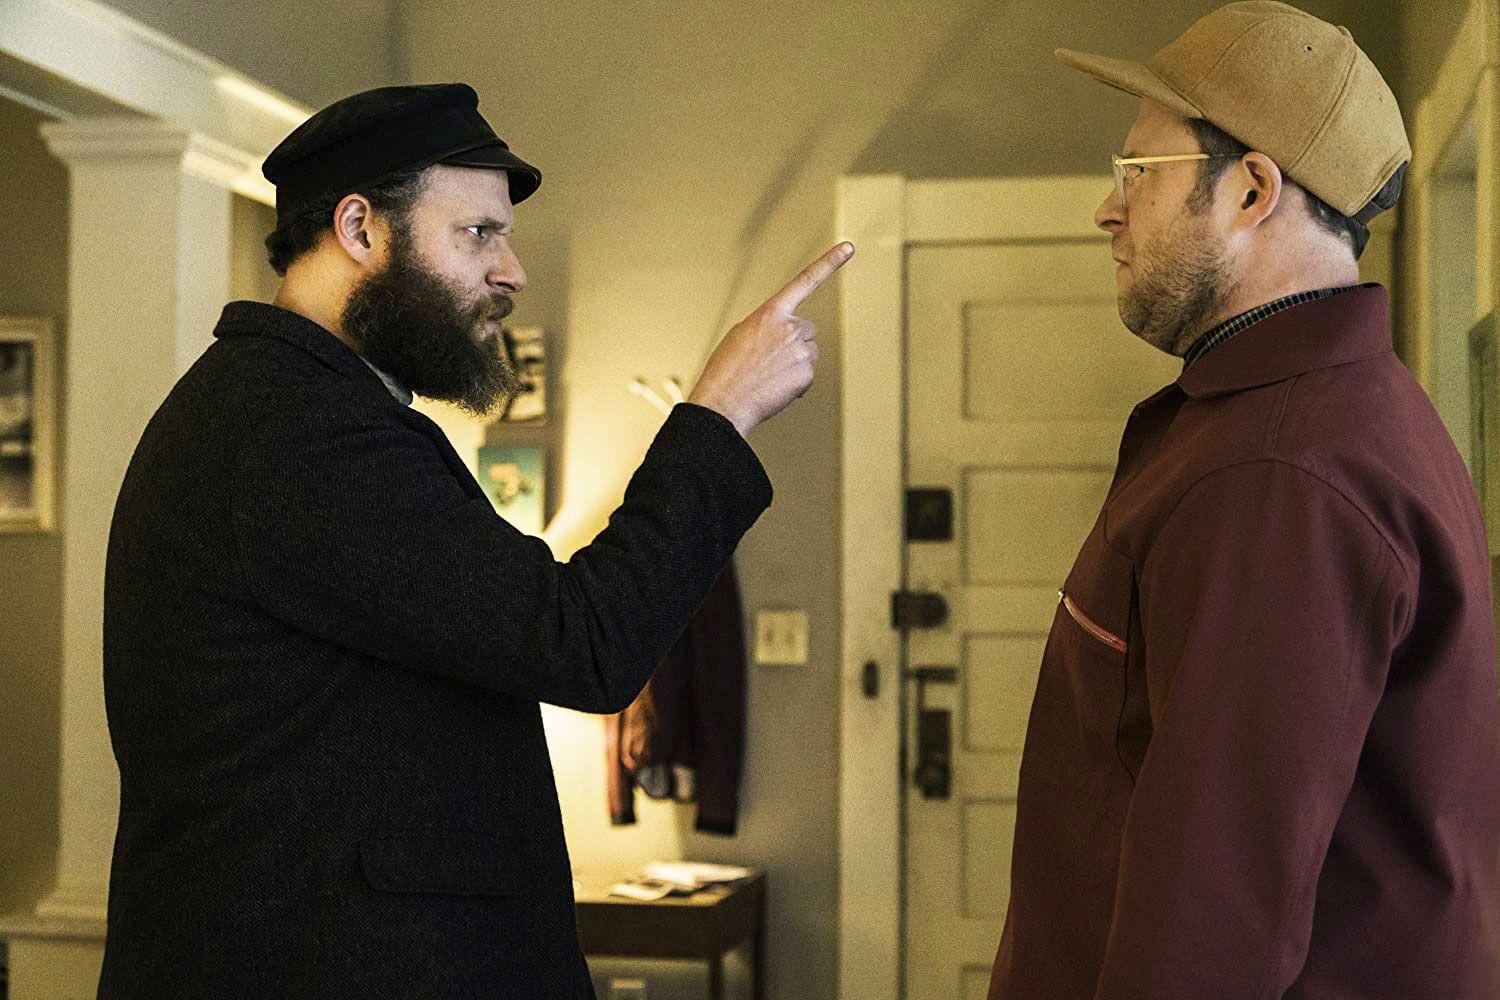 Seth Rogen in An American Pickle (2020). Left is Herschel, a Jewish man from the early 1900s, wearing a thick black overcoat and black cap, with a thick beard. He has a severe expression and points his finger in the face of Ben (also Rogen), an identical man but dressed in a modern burgundy jacket and beige snapback cap. He is looking confused.